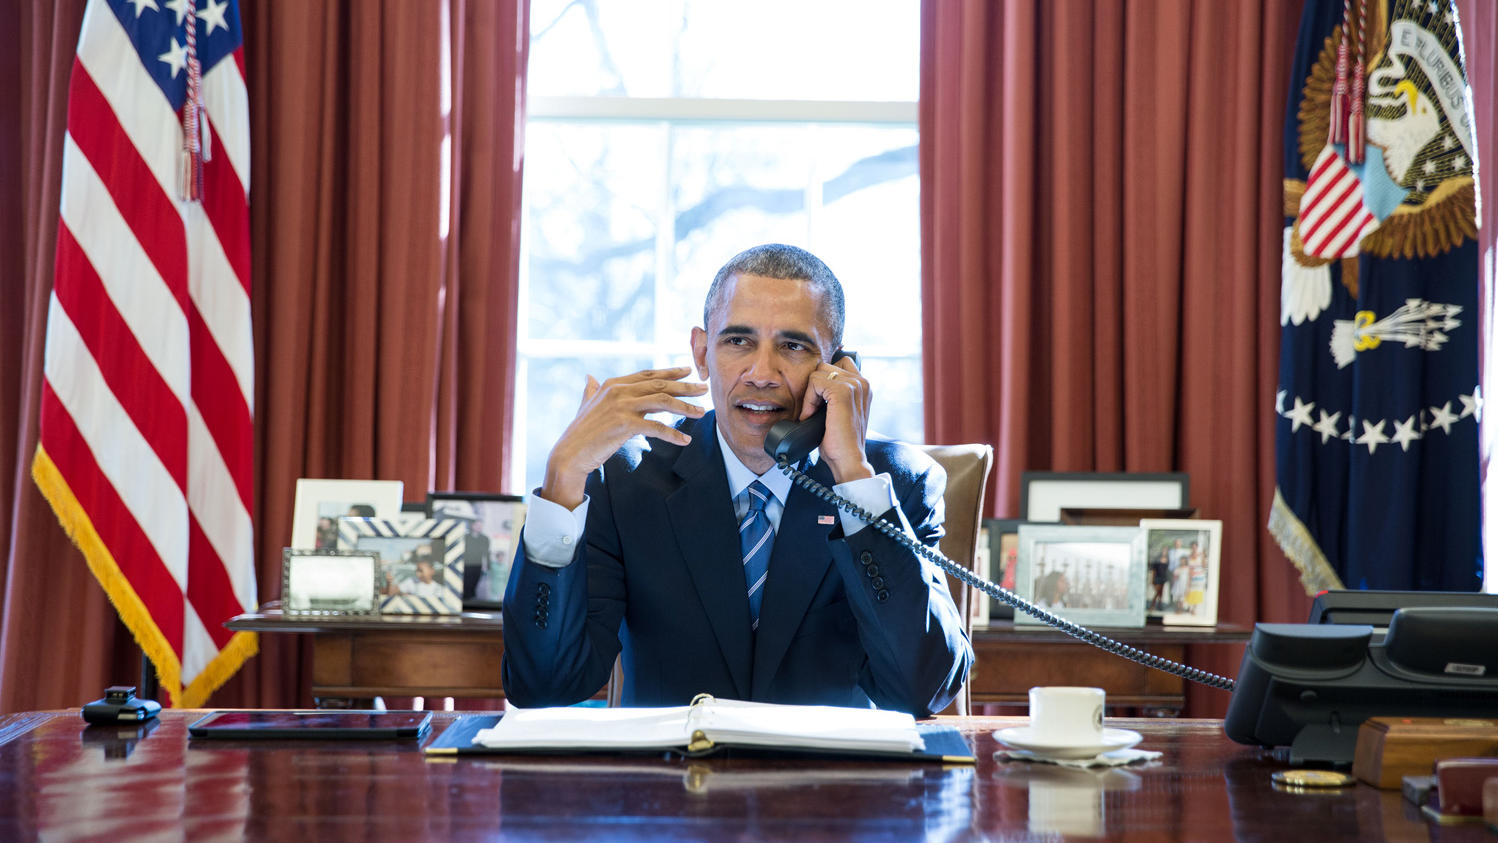 President Obama in the Oval Office in 2016